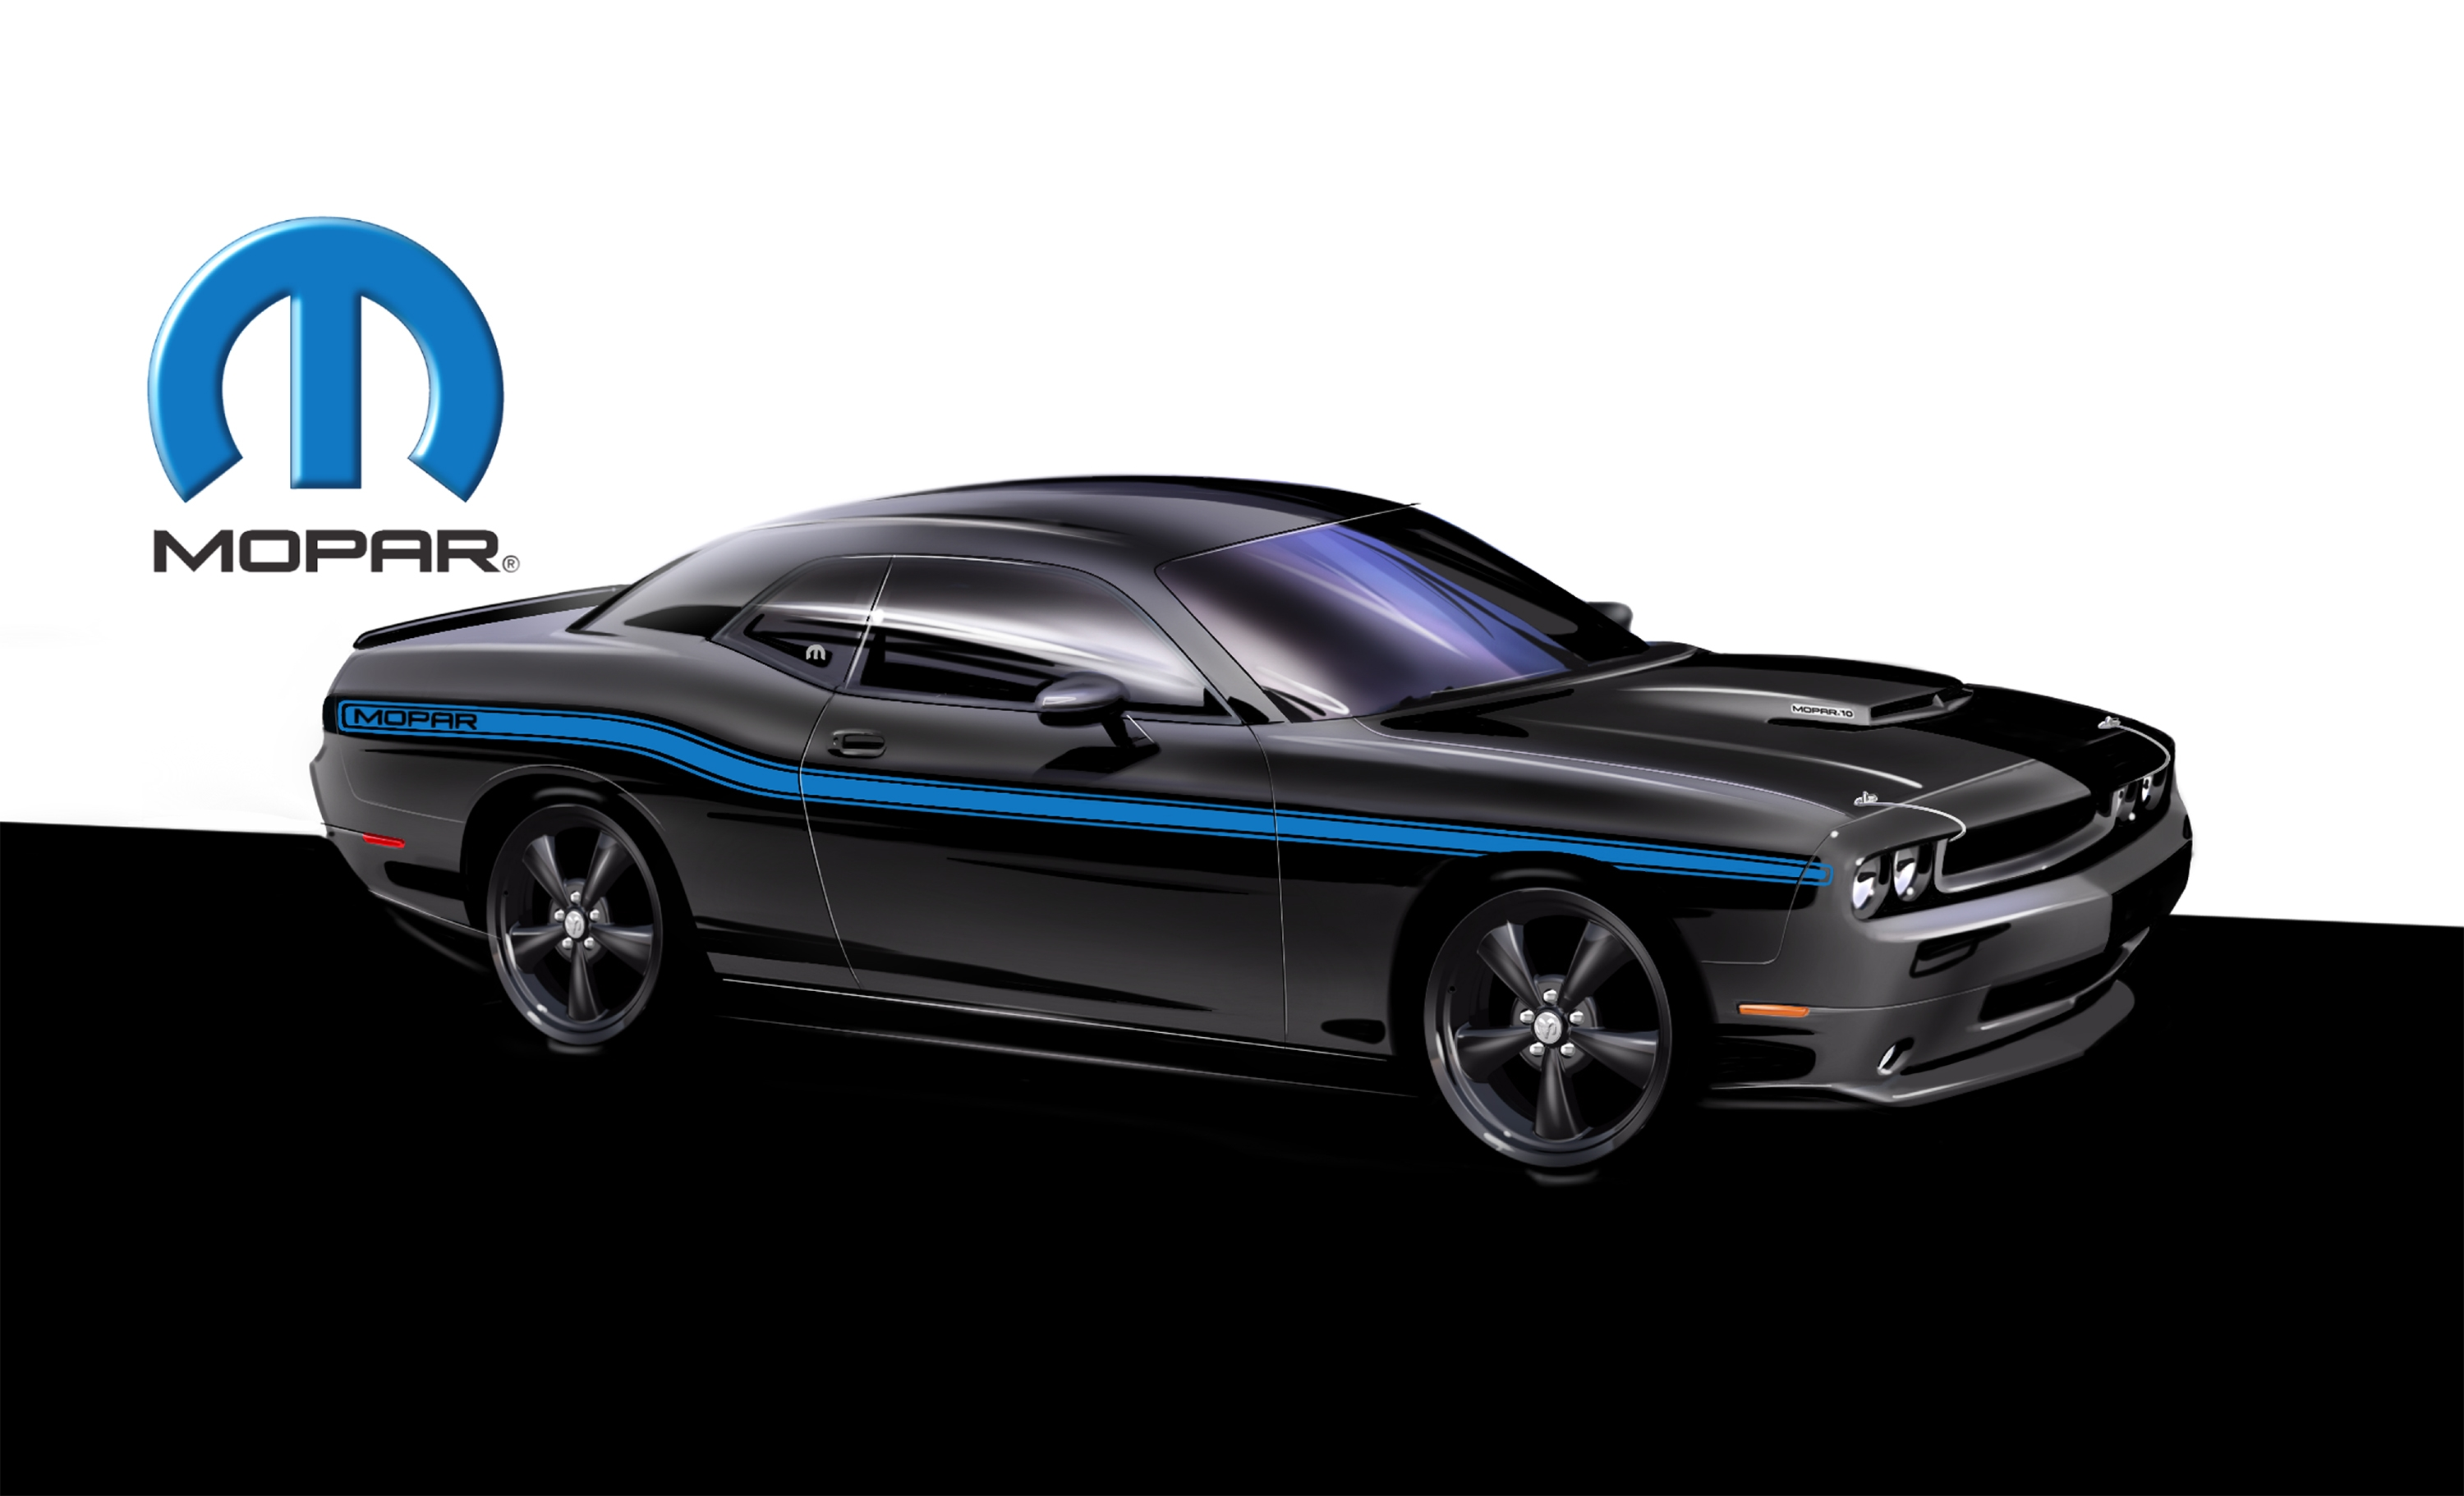 Dodge Mopar 10 Challenger Preview